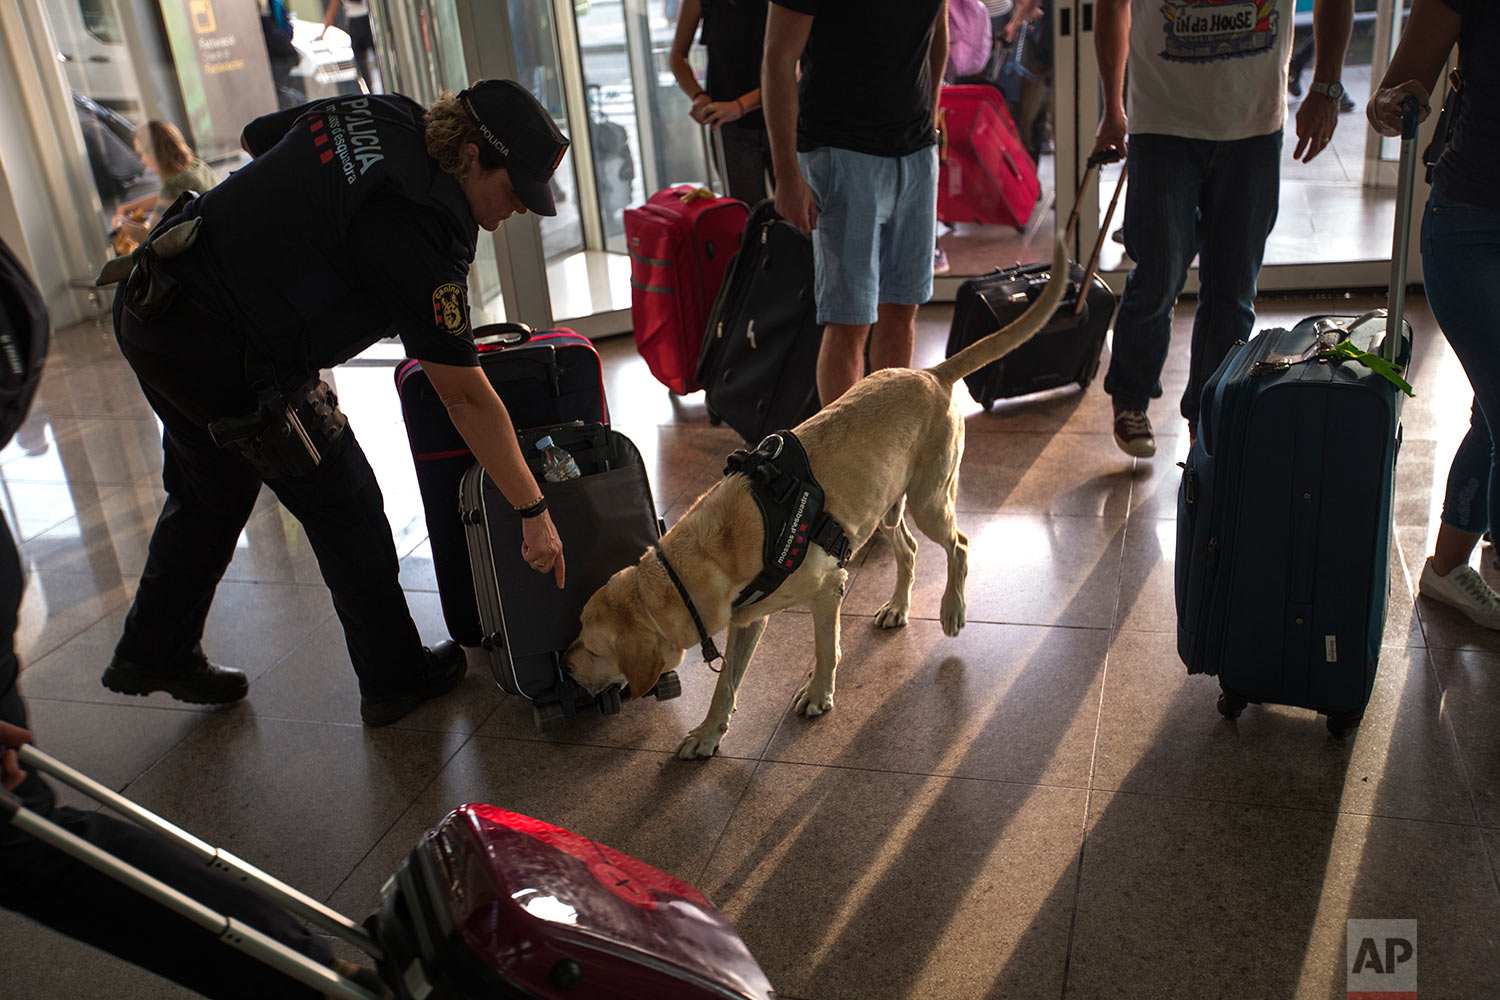 In this Thursday, Sept. 21, 2017 photo, a Catalan Mossos d'Esquadra officer works with her sniffer dog inspecting suitcases, at one of the entrances of the Barcelona airport, Spain. The Mossos, in their dark blue uniforms, patrol the streets of Catalonia, one of Spain's 17 autonomous regions with broad rights of self-government, and also operate special forces units. (AP Photo/Emilio Morenatti)